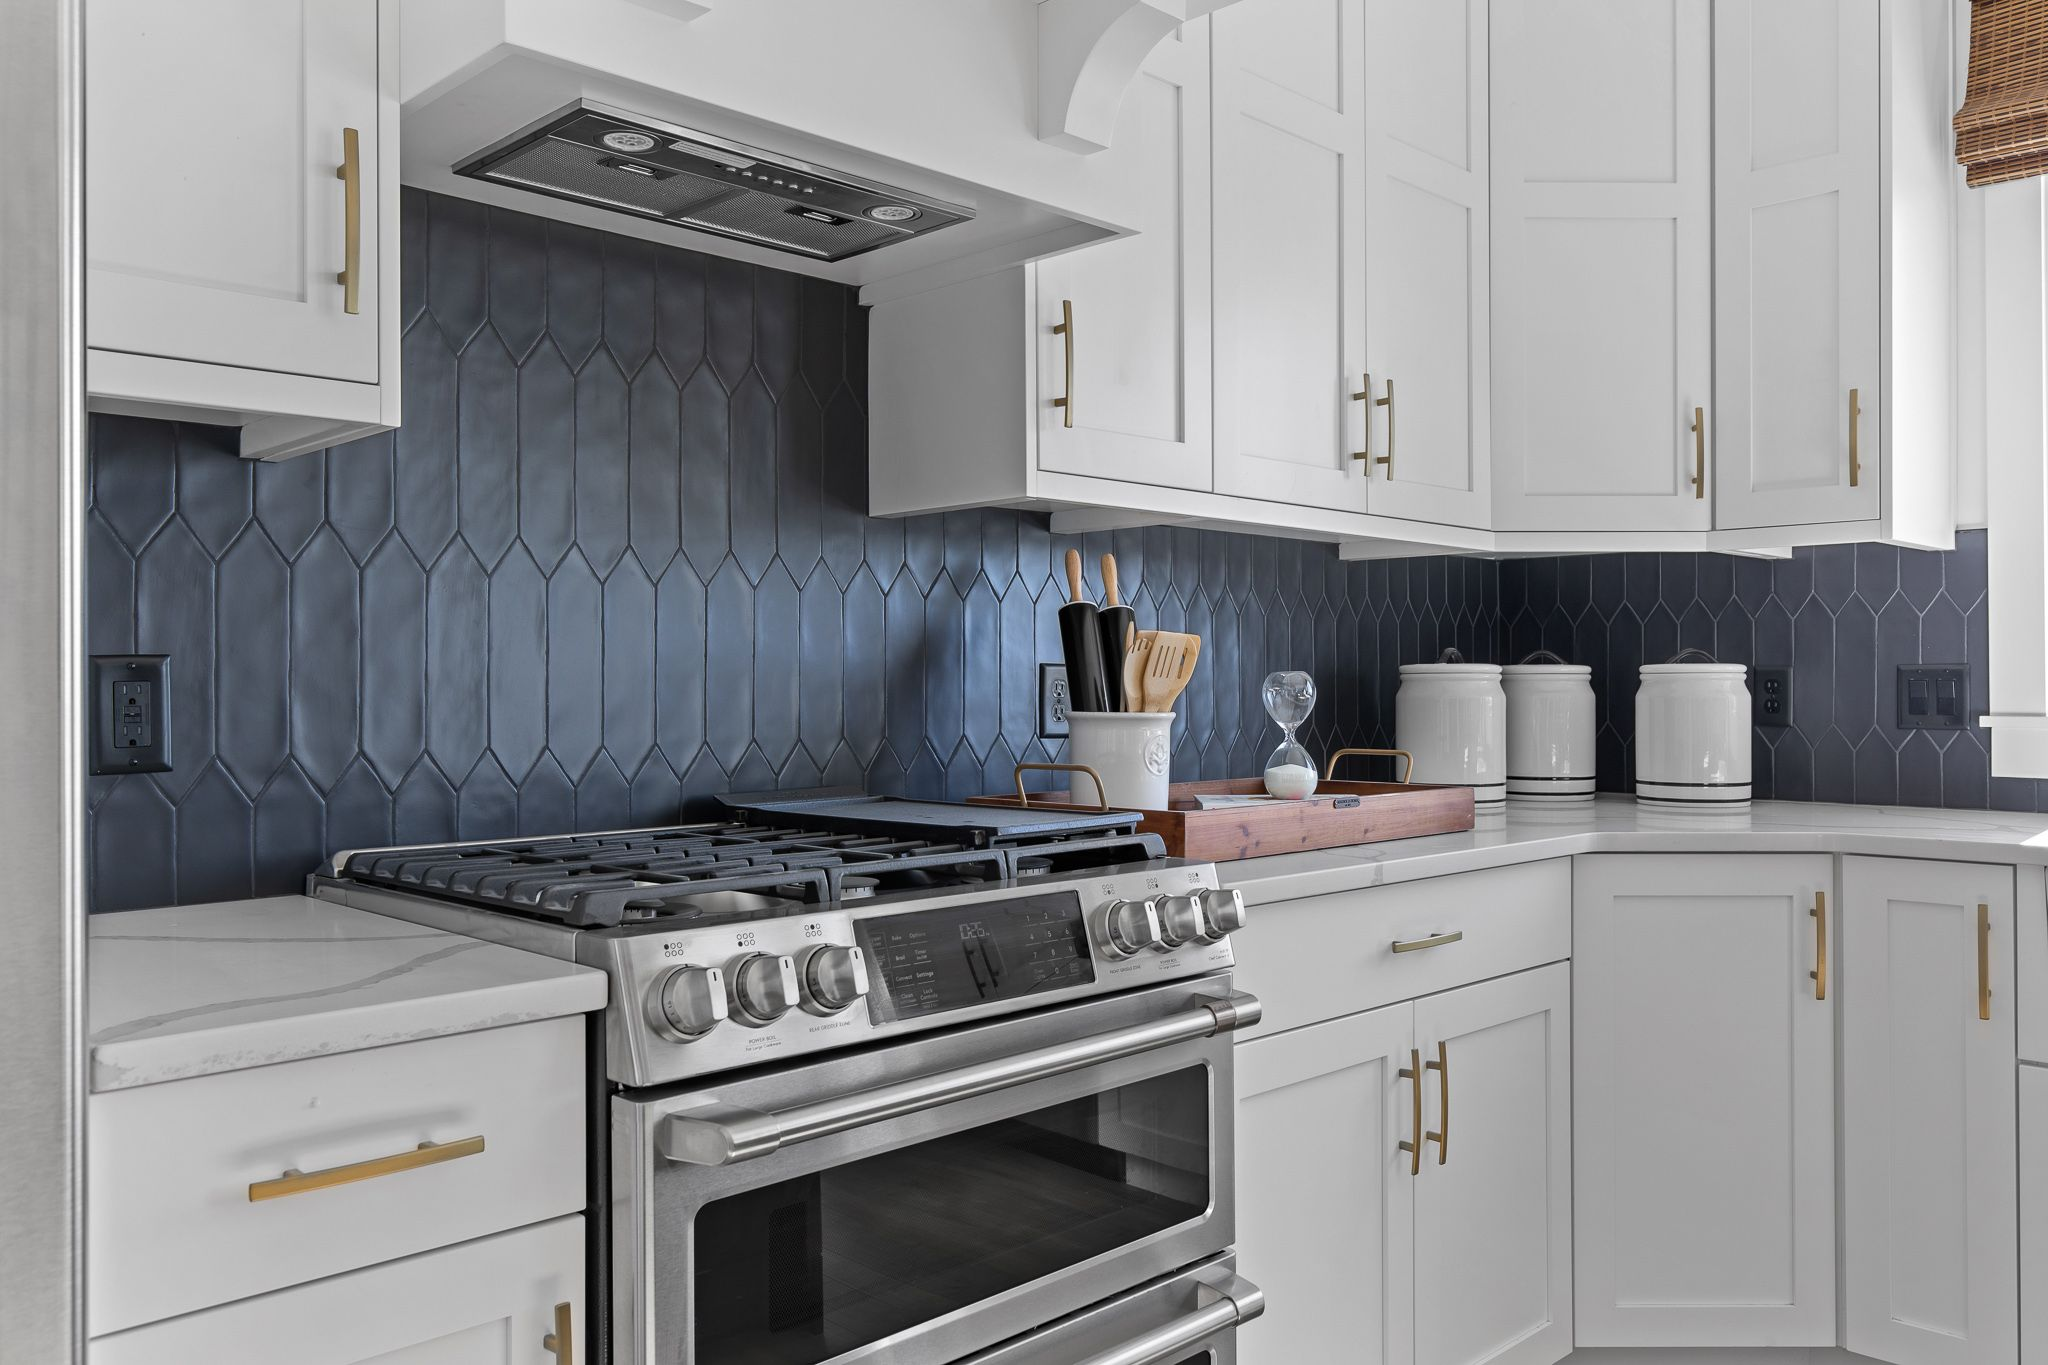 Kitchen featured in the Madison (SOG) By Visionary Homes in Logan, UT